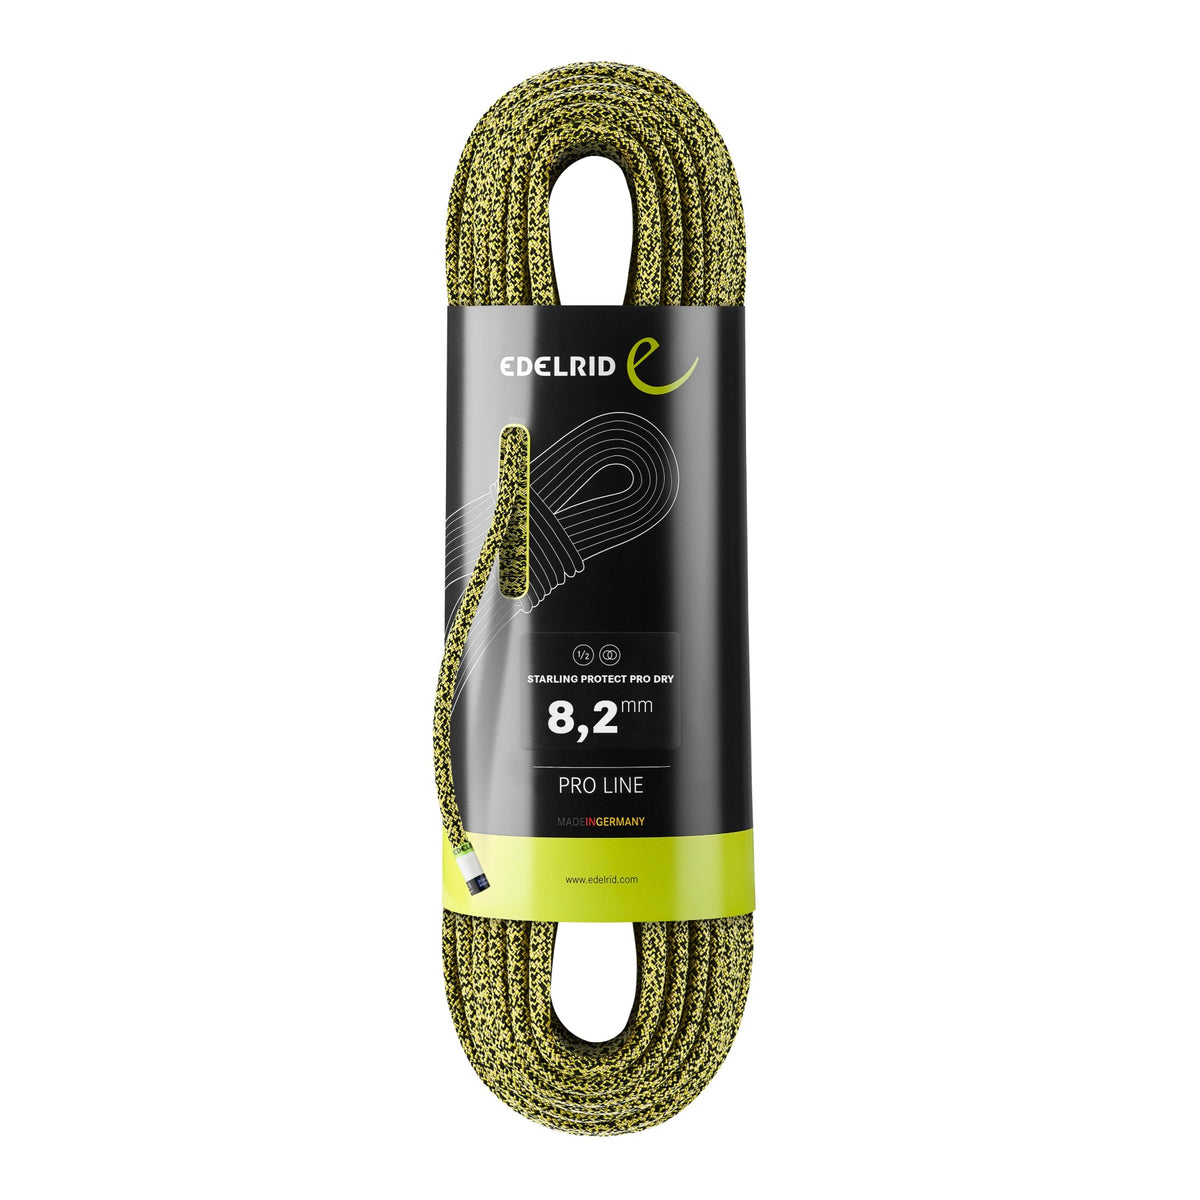 Edelrid Starling Protect Pro Dry 8.2mm x 60m, Colour Yellow-Night